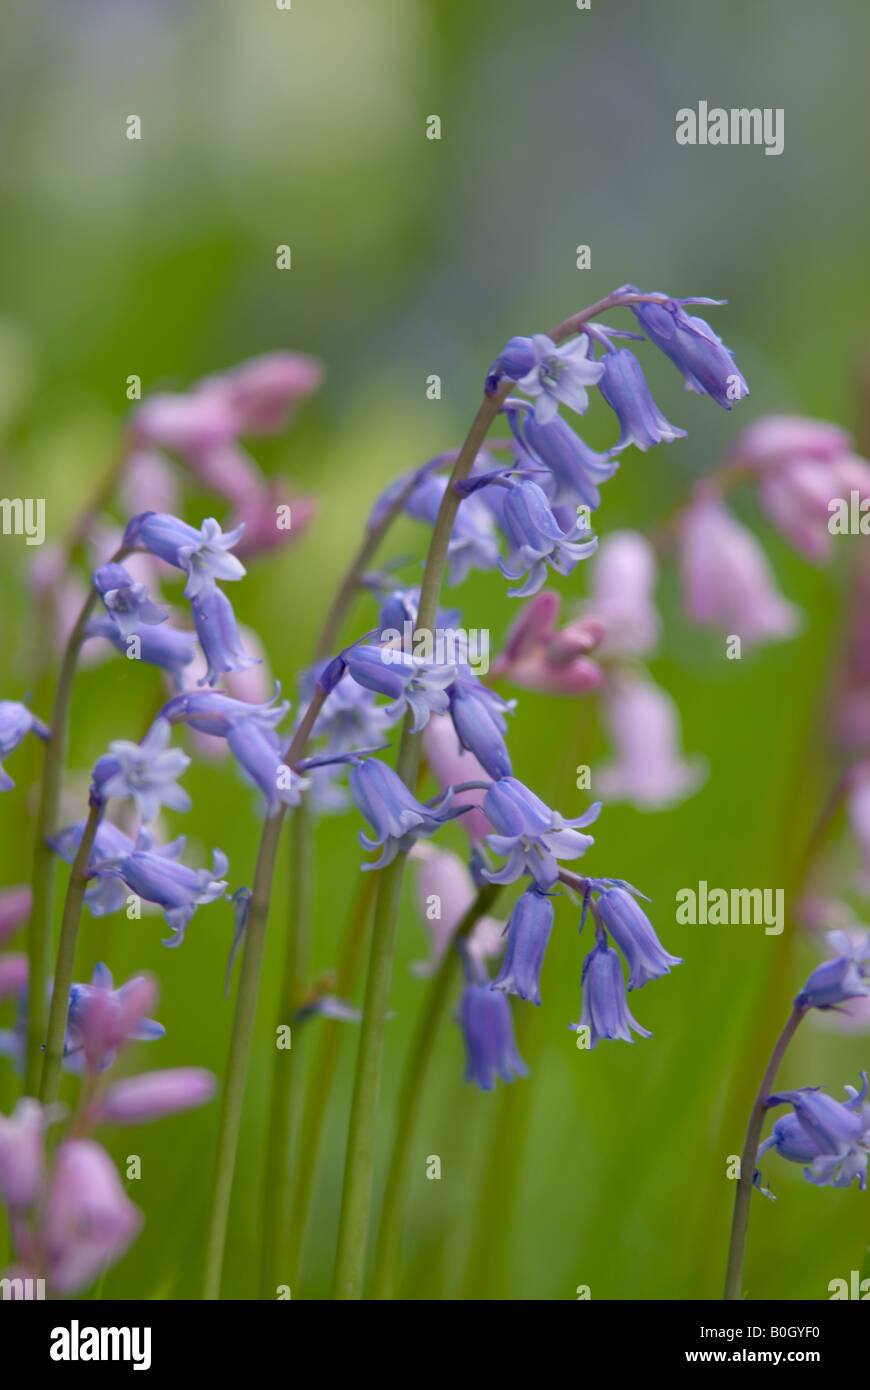 Close-up of a Spanish Bluebell - Stock Image